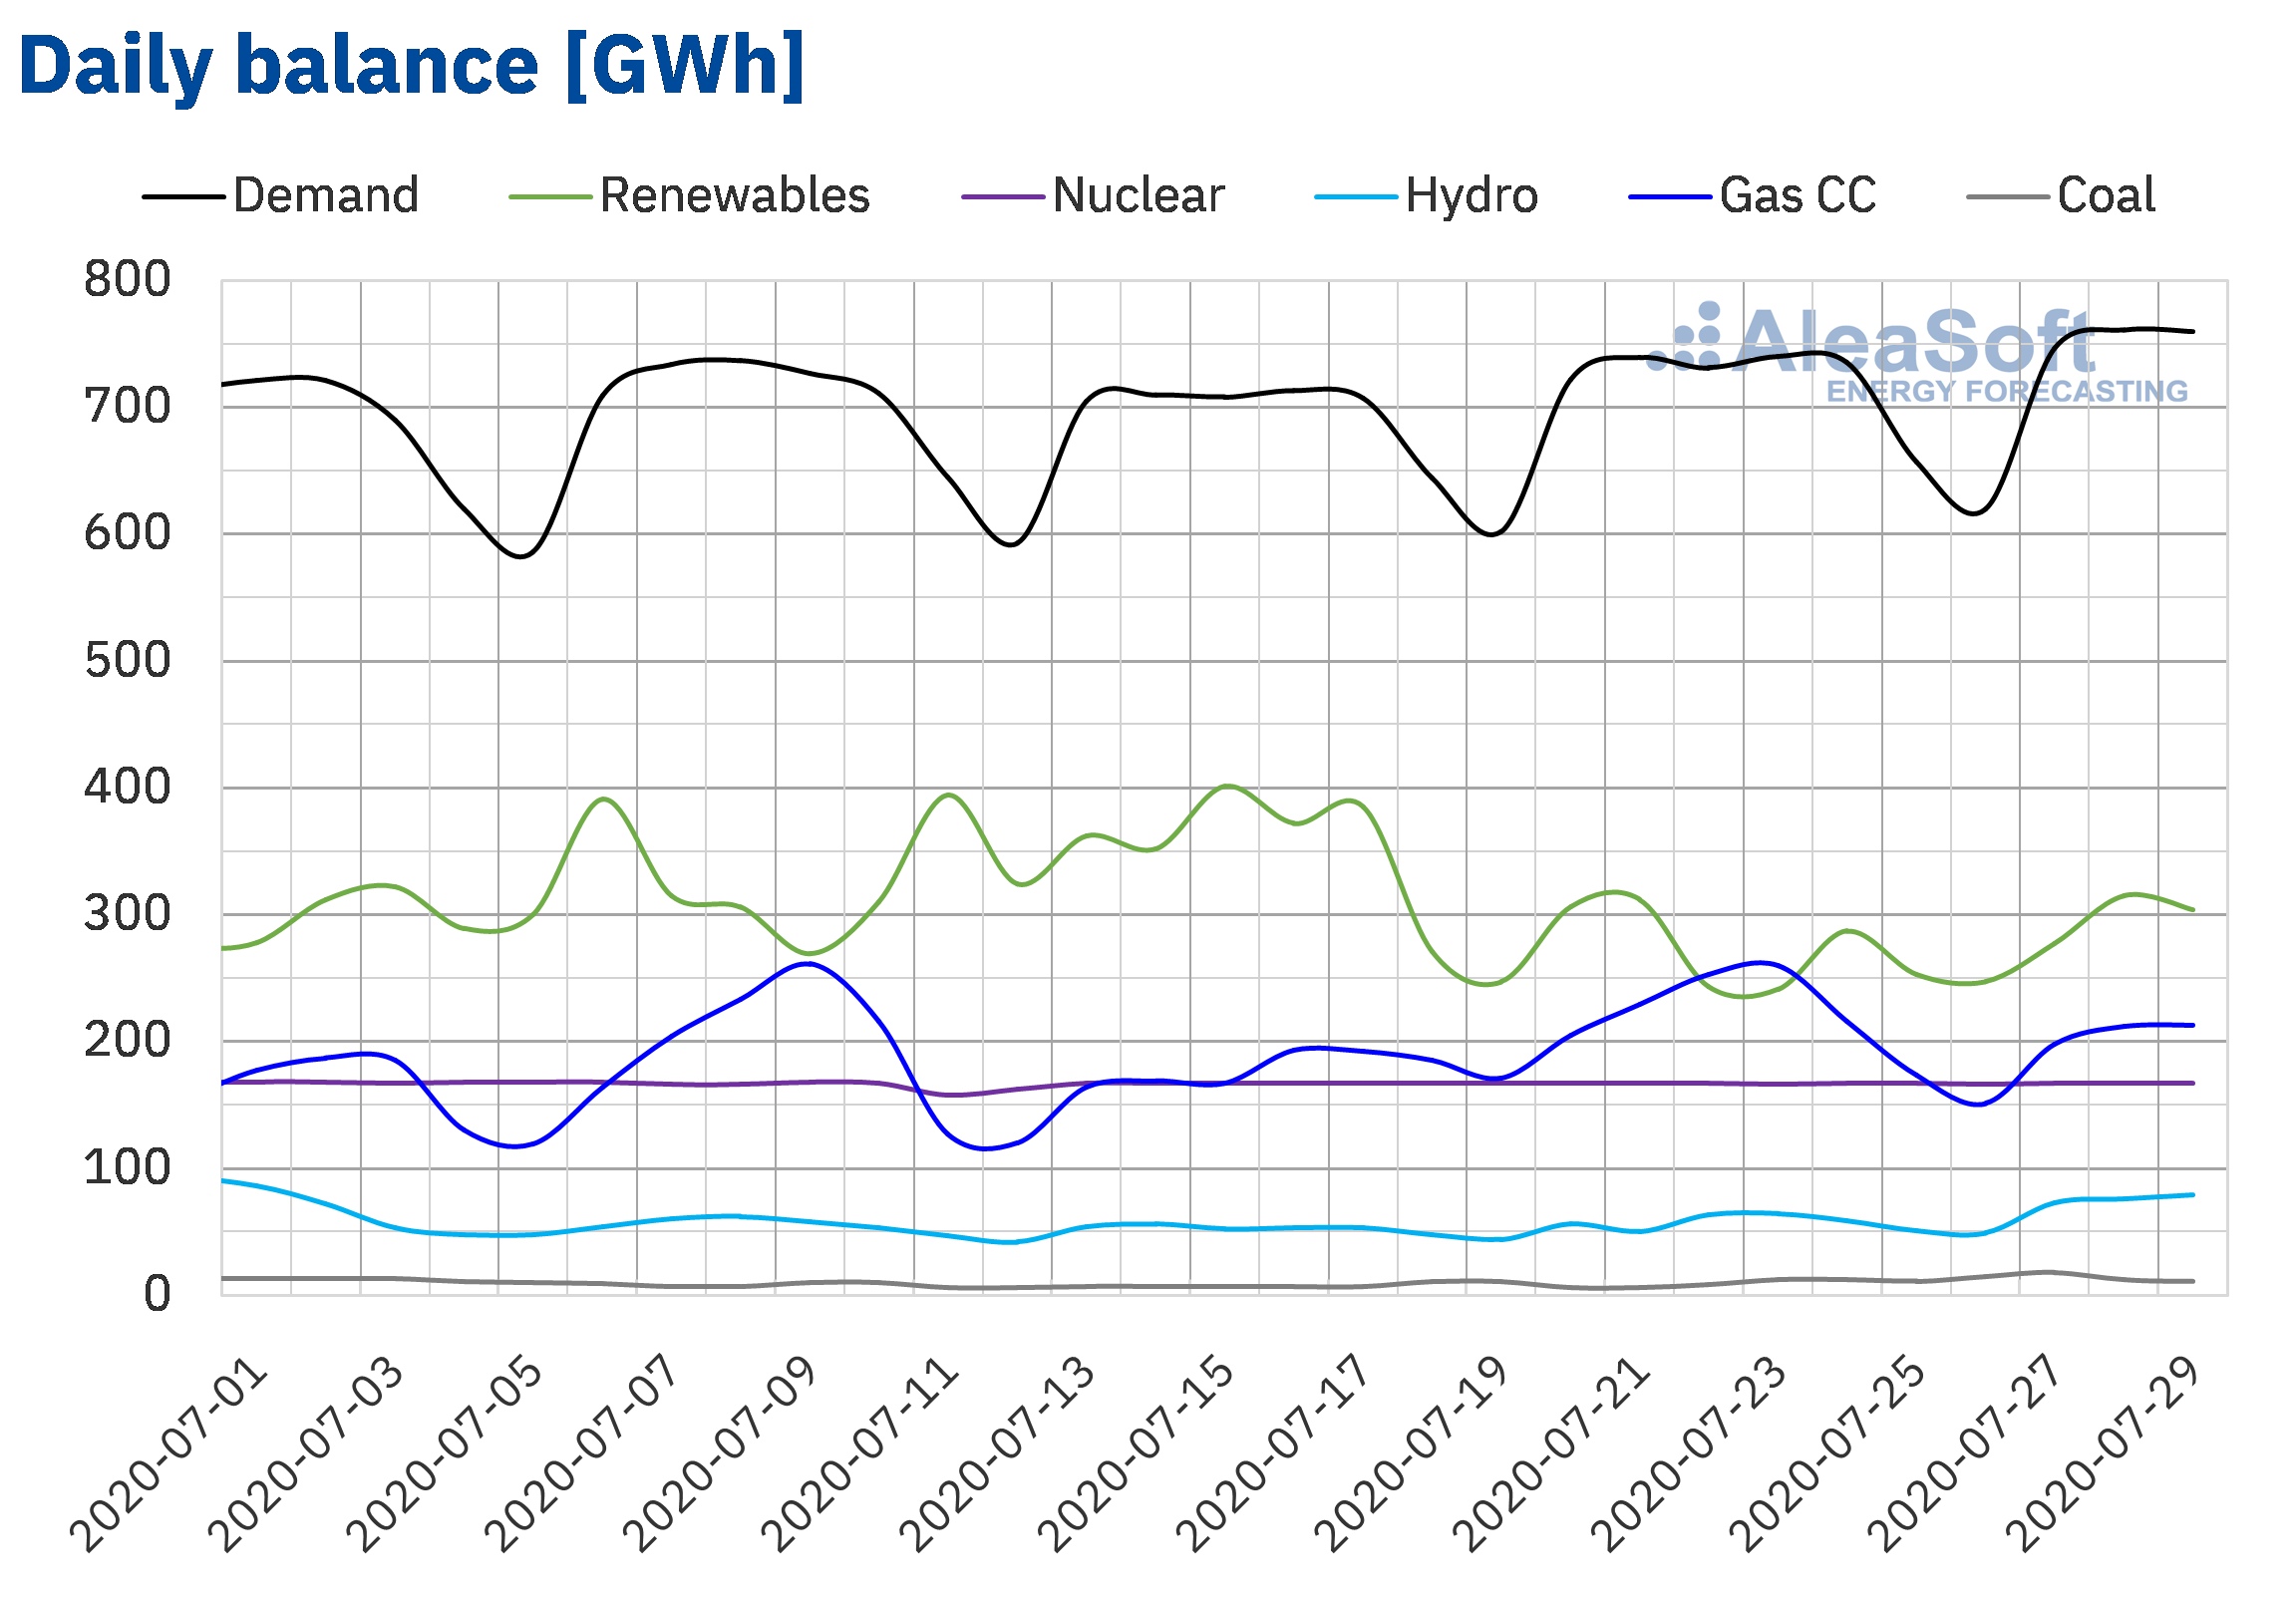 AleaSoft - Daily balance of electricity of Spain